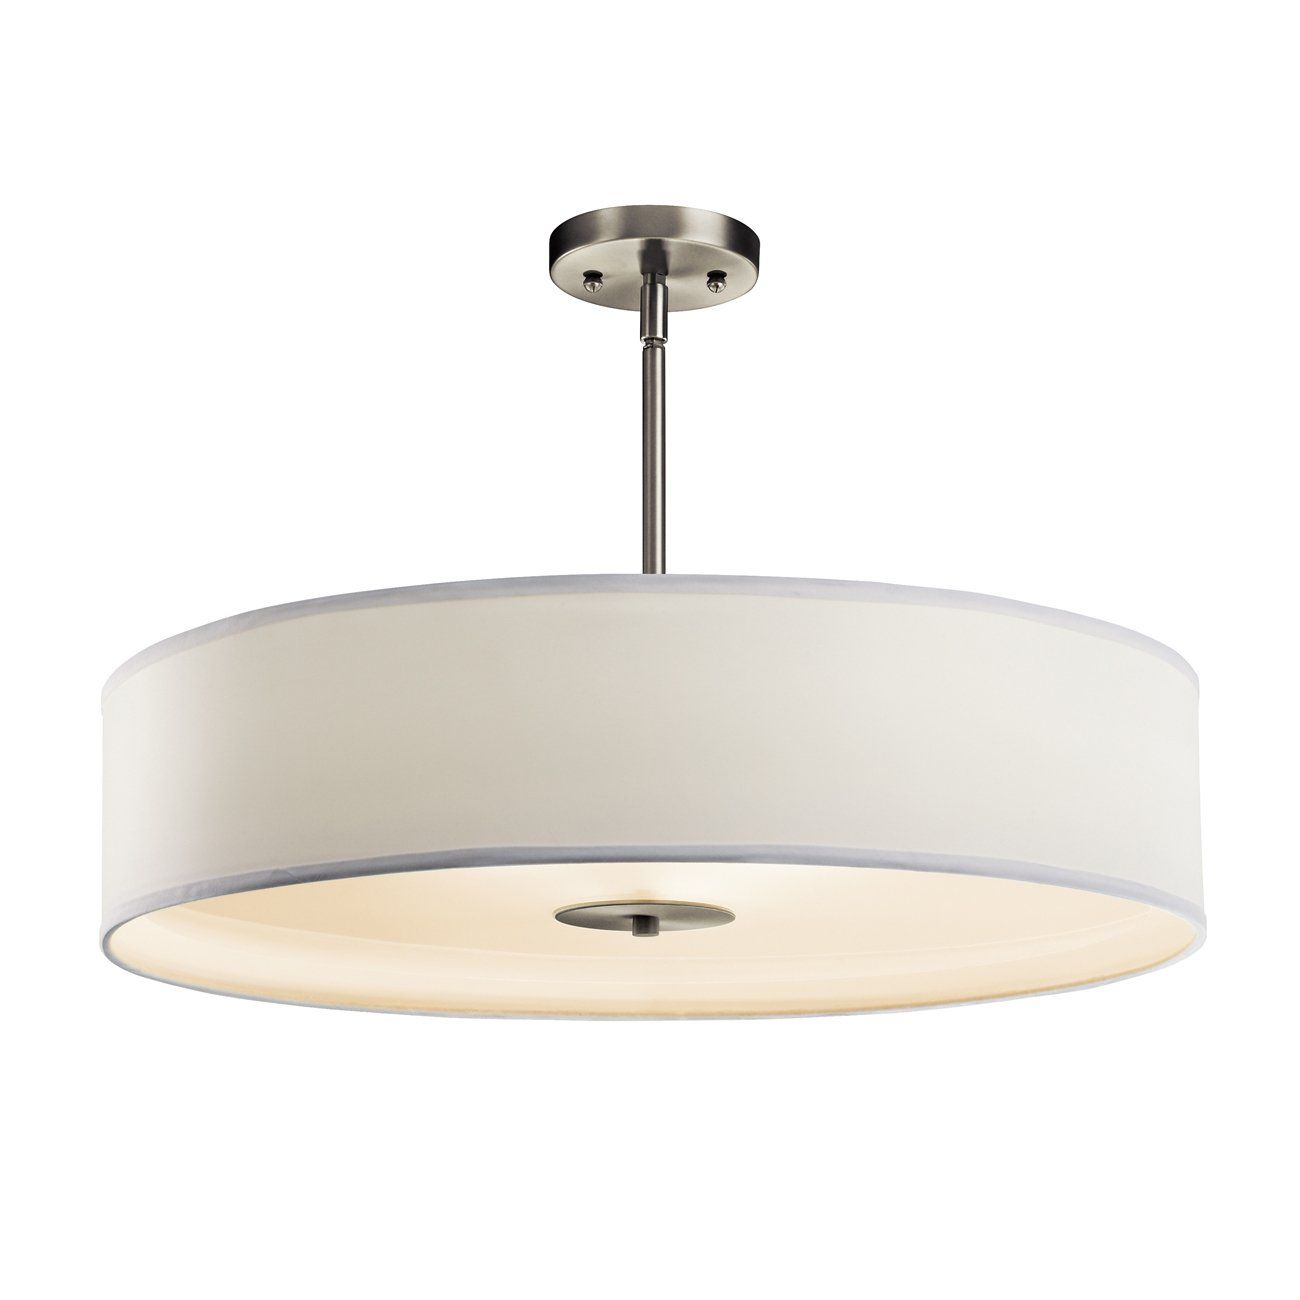 drum lighting pendant. Kichler Lighting 42122 3-Light Large Convertible Pendant/Semi Flush Ceiling Light - Drum Pendant I